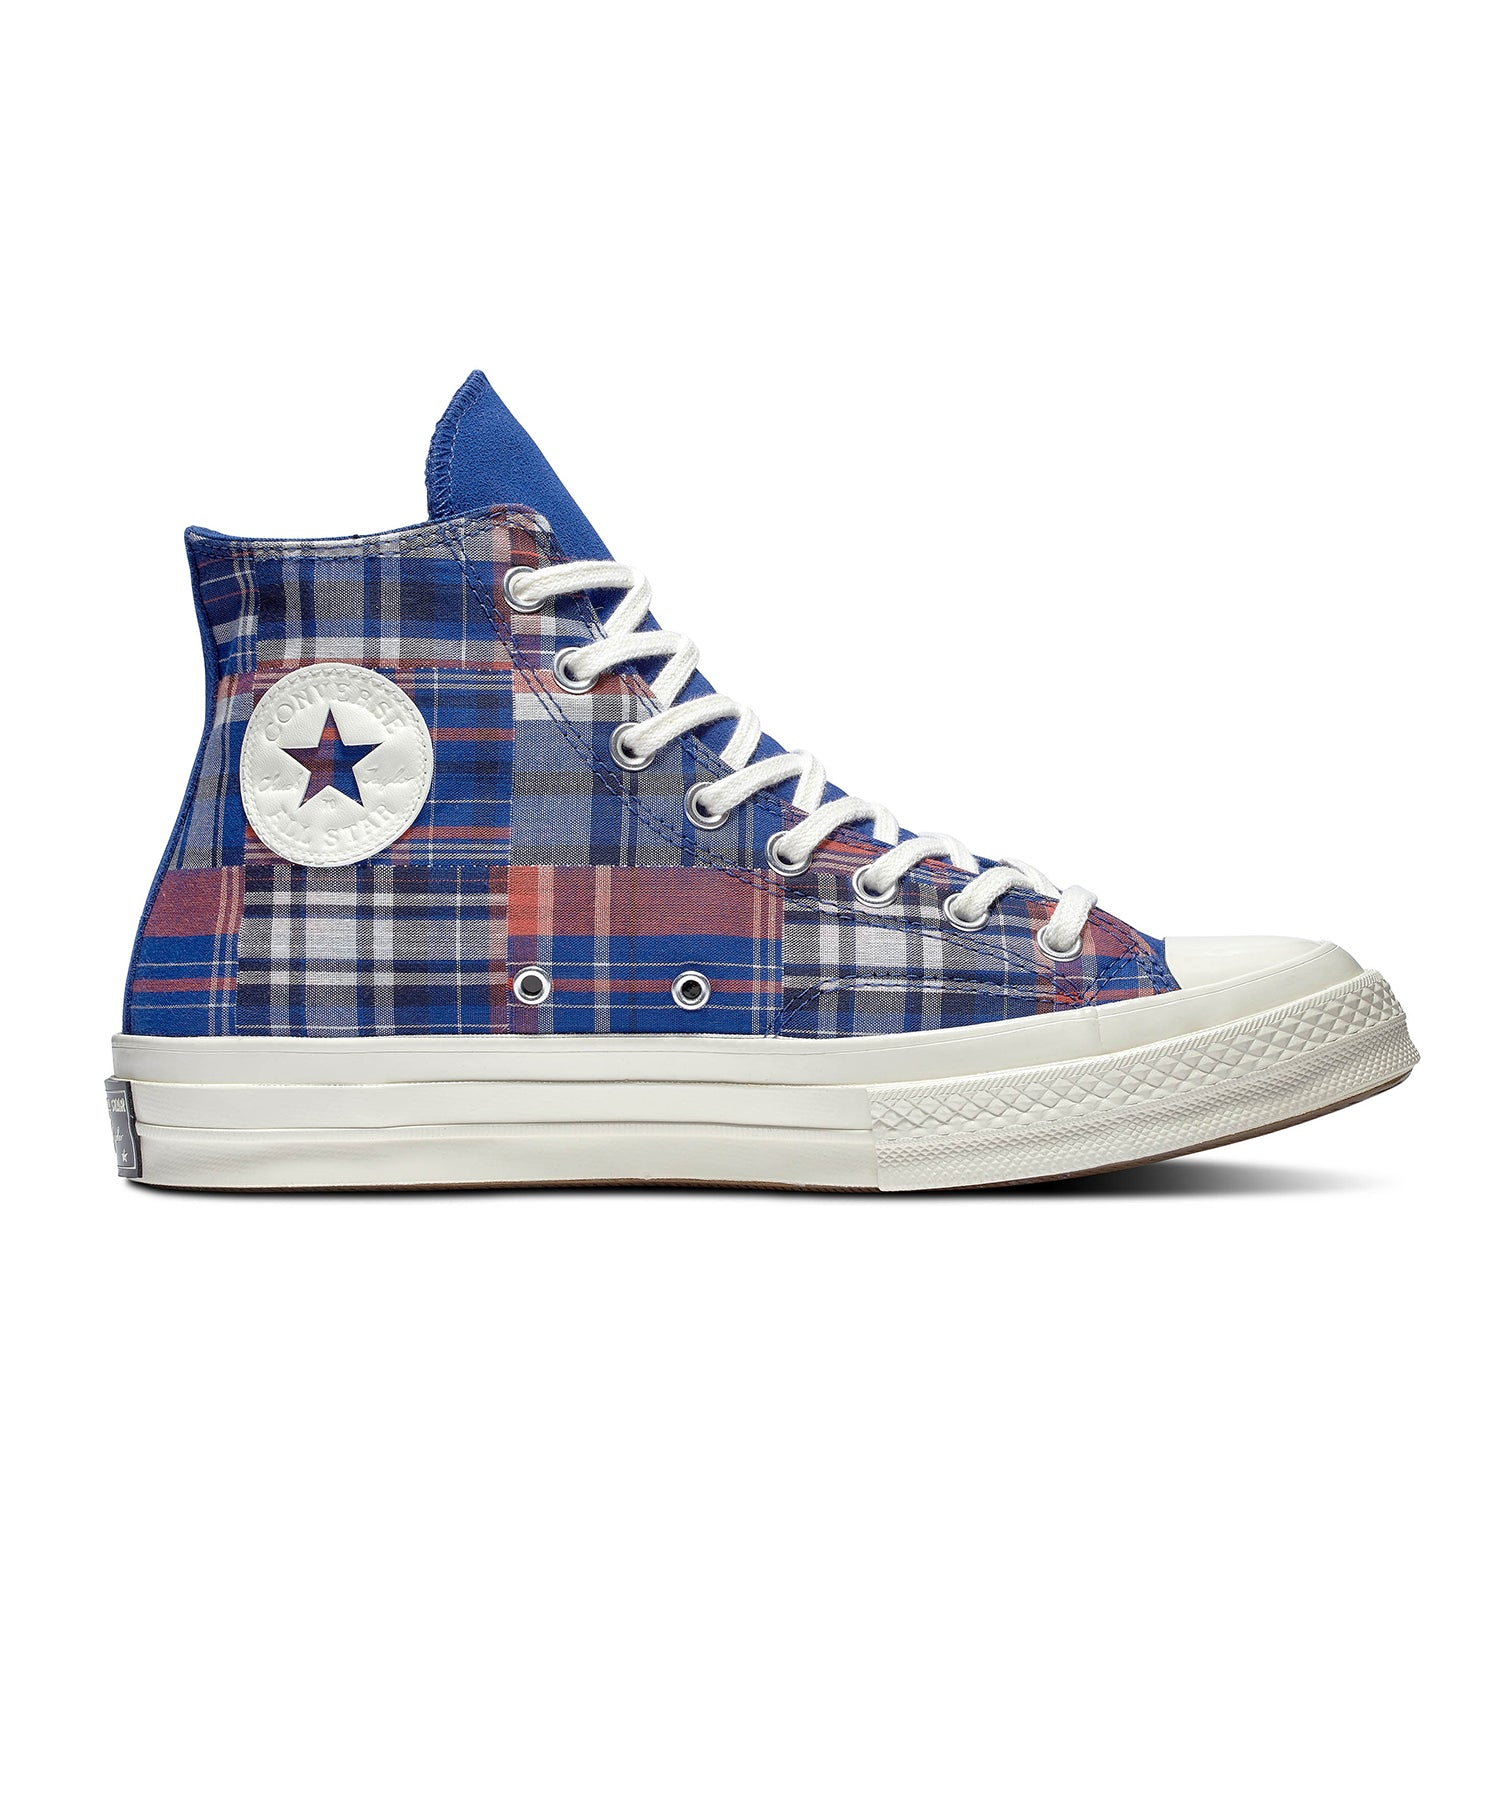 Converse Twisted Prep Chuck 70 High in Rush Blue